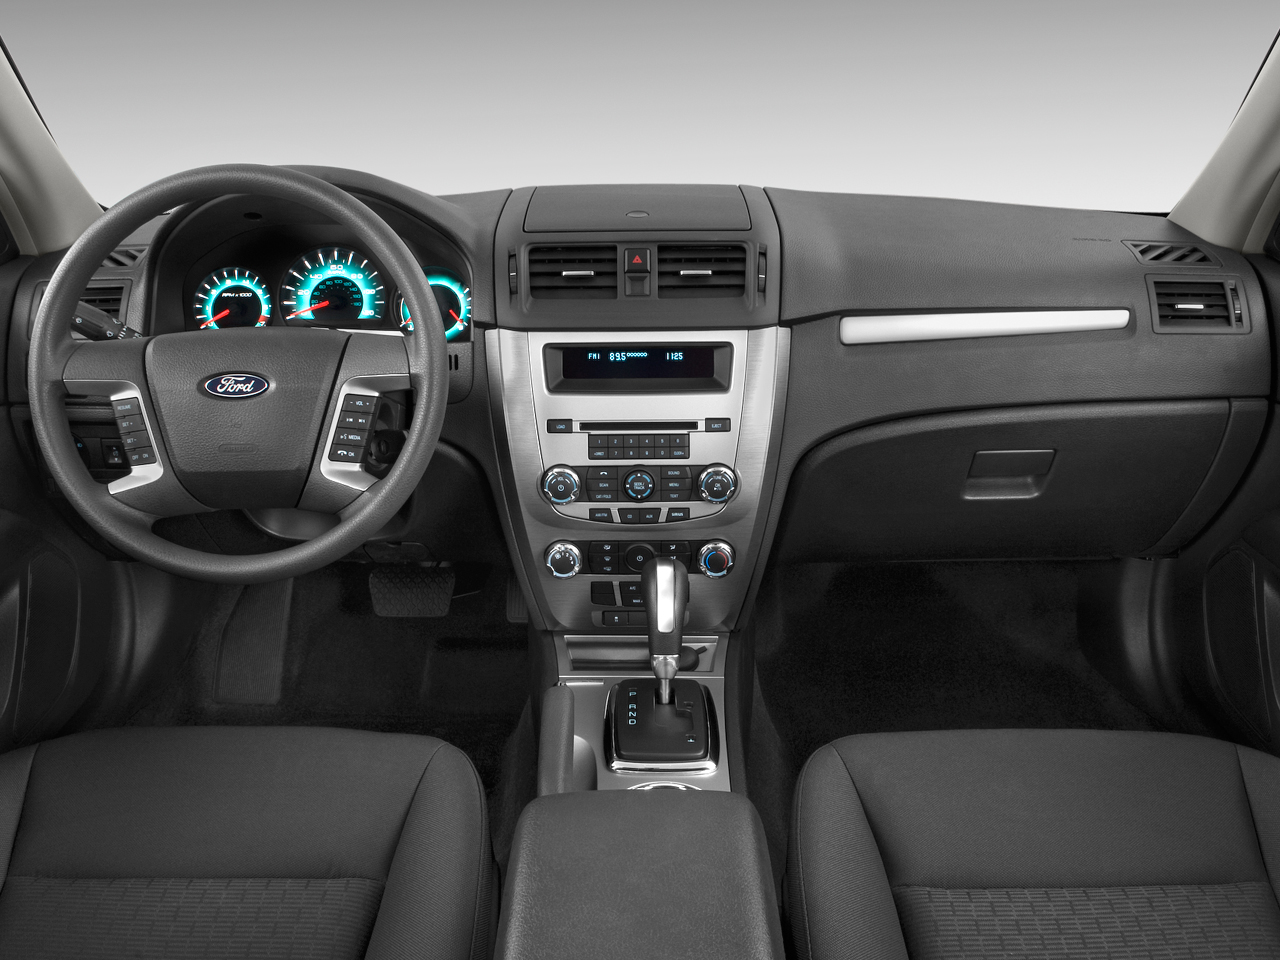 Ford S Second Gen Sync Adds Wifi Is It Sharing Or